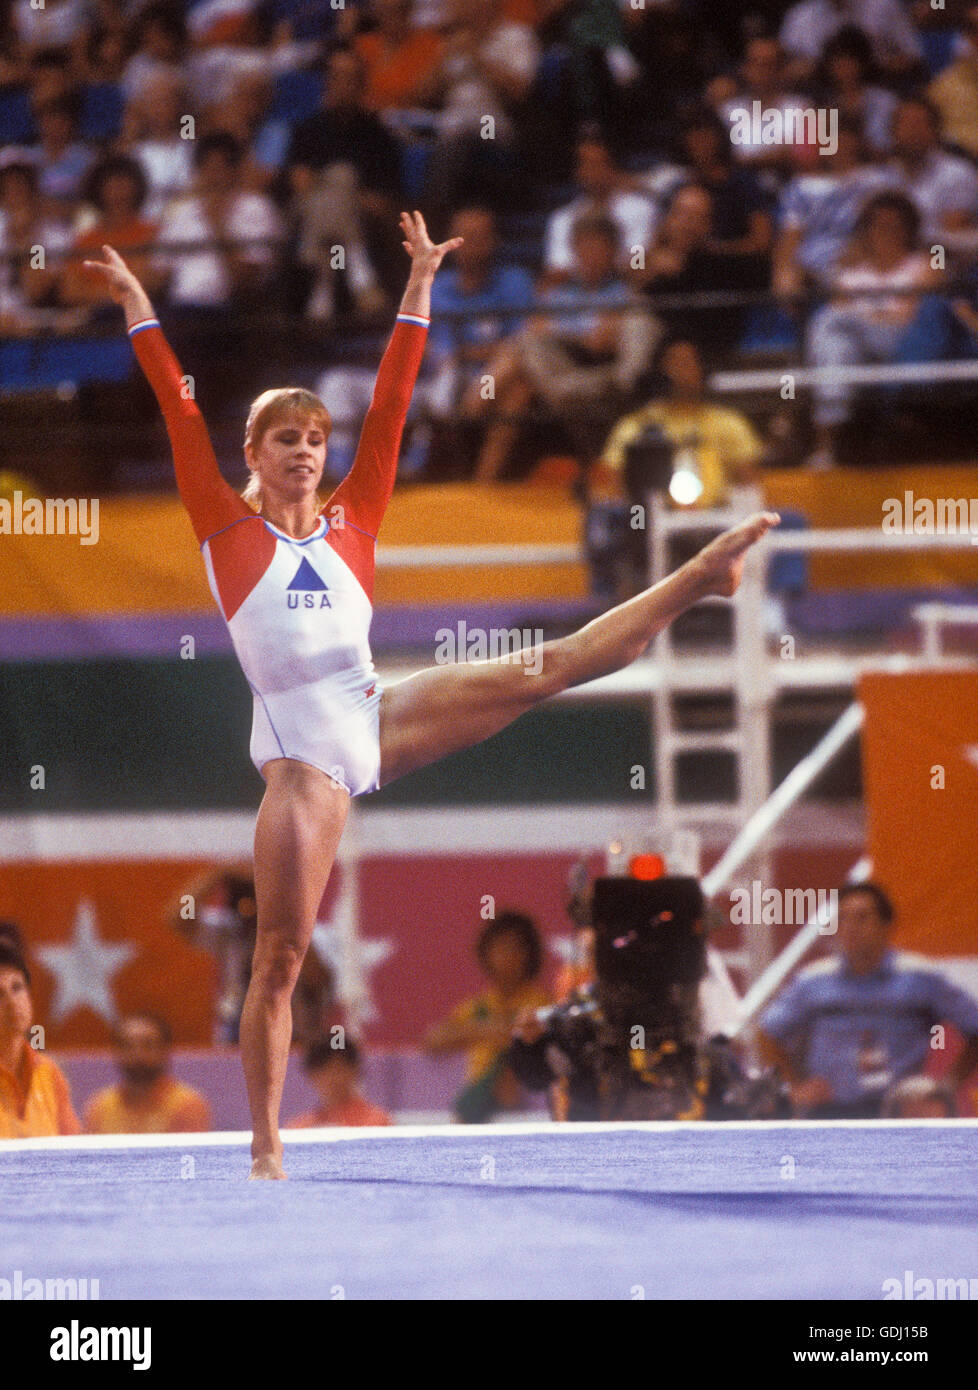 Kathy Johnson of USA performs floor exercises during competition at 1984 Olympic Games in Los Angeles. - Stock Image